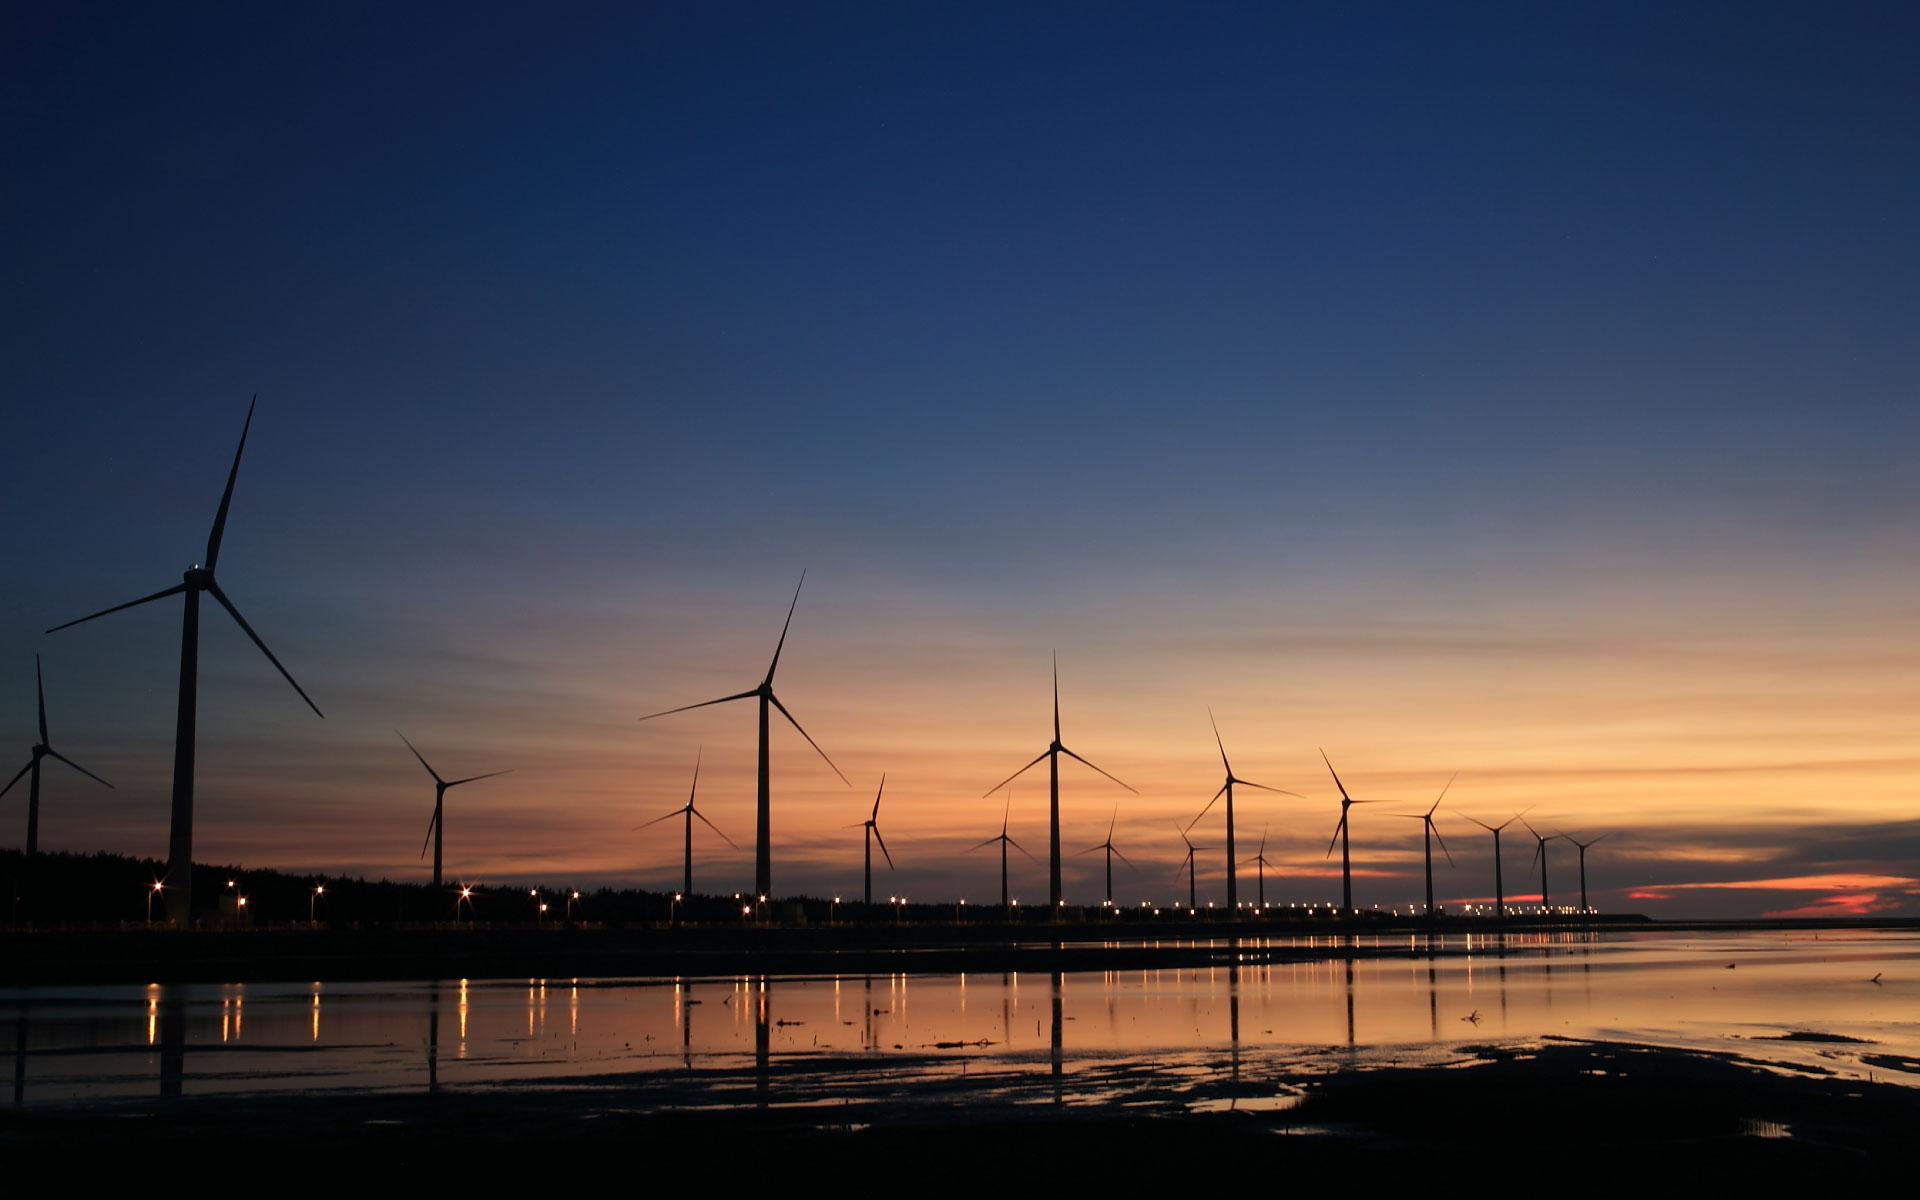 Will IoT Implementation in Renewable Energy Create New Cyber Attack Risks?